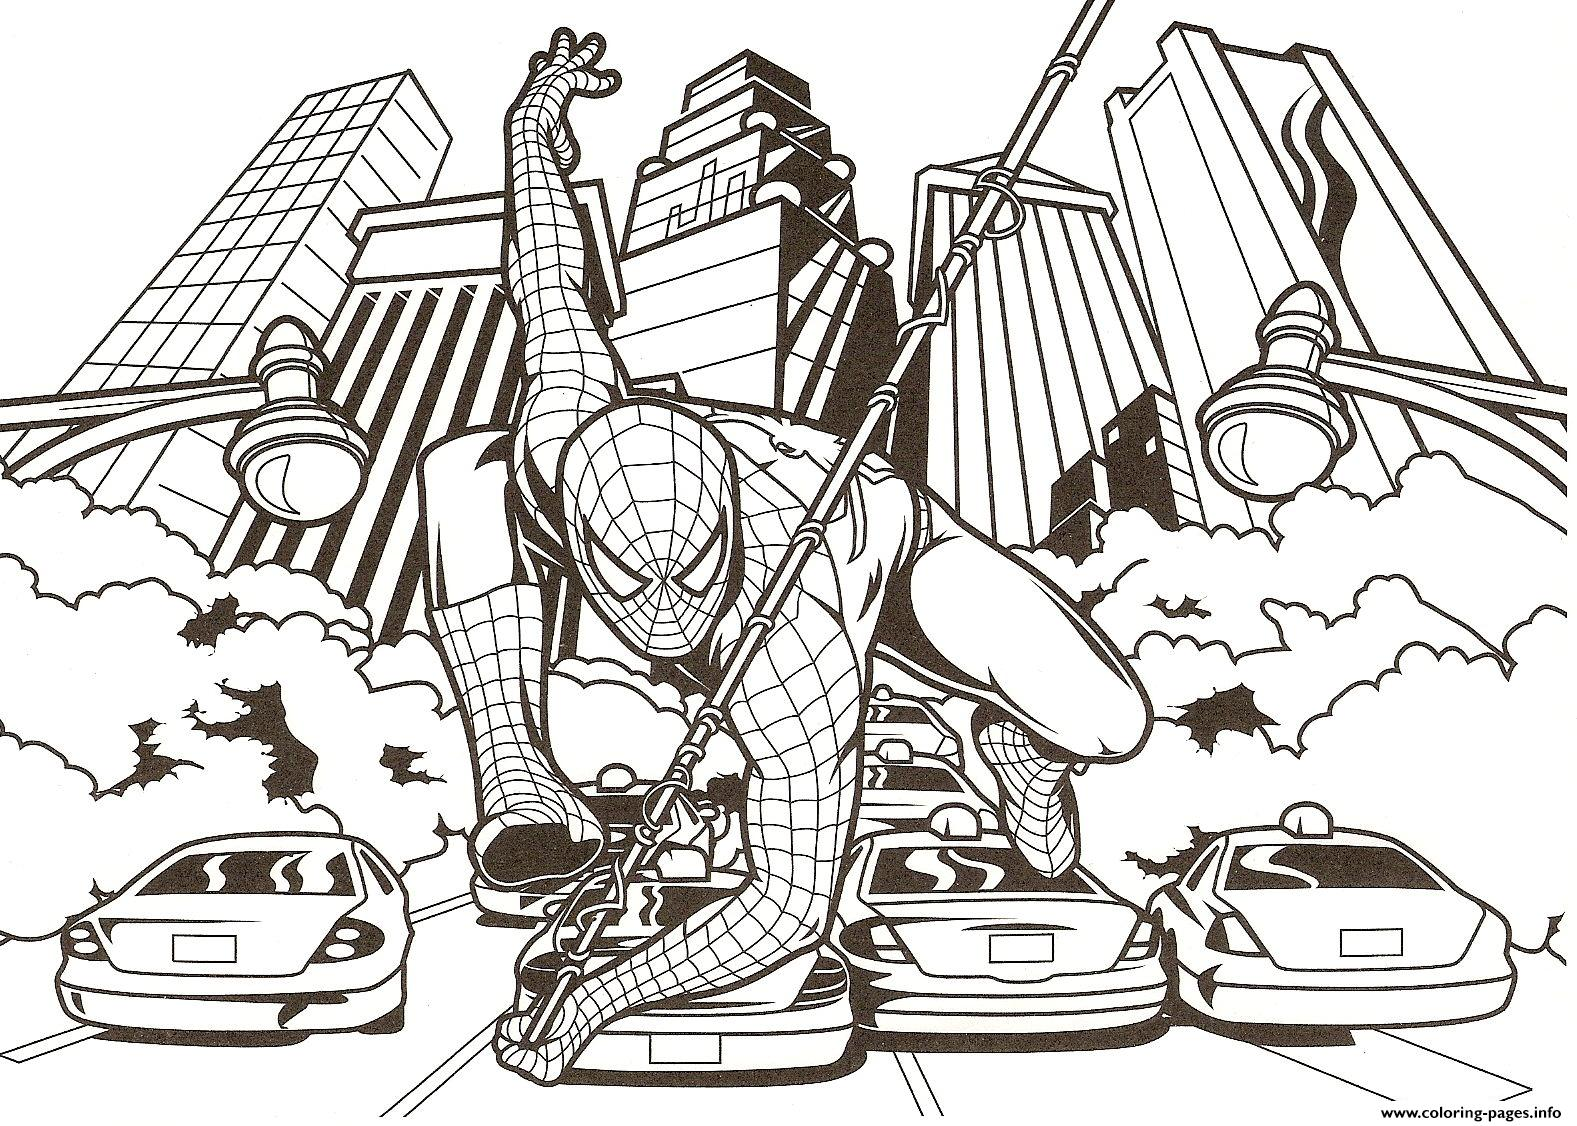 Spiderman 3 coloring pages - Amazing Spiderman S80db Colouring Print Amazing Spiderman S80db Coloring Pages